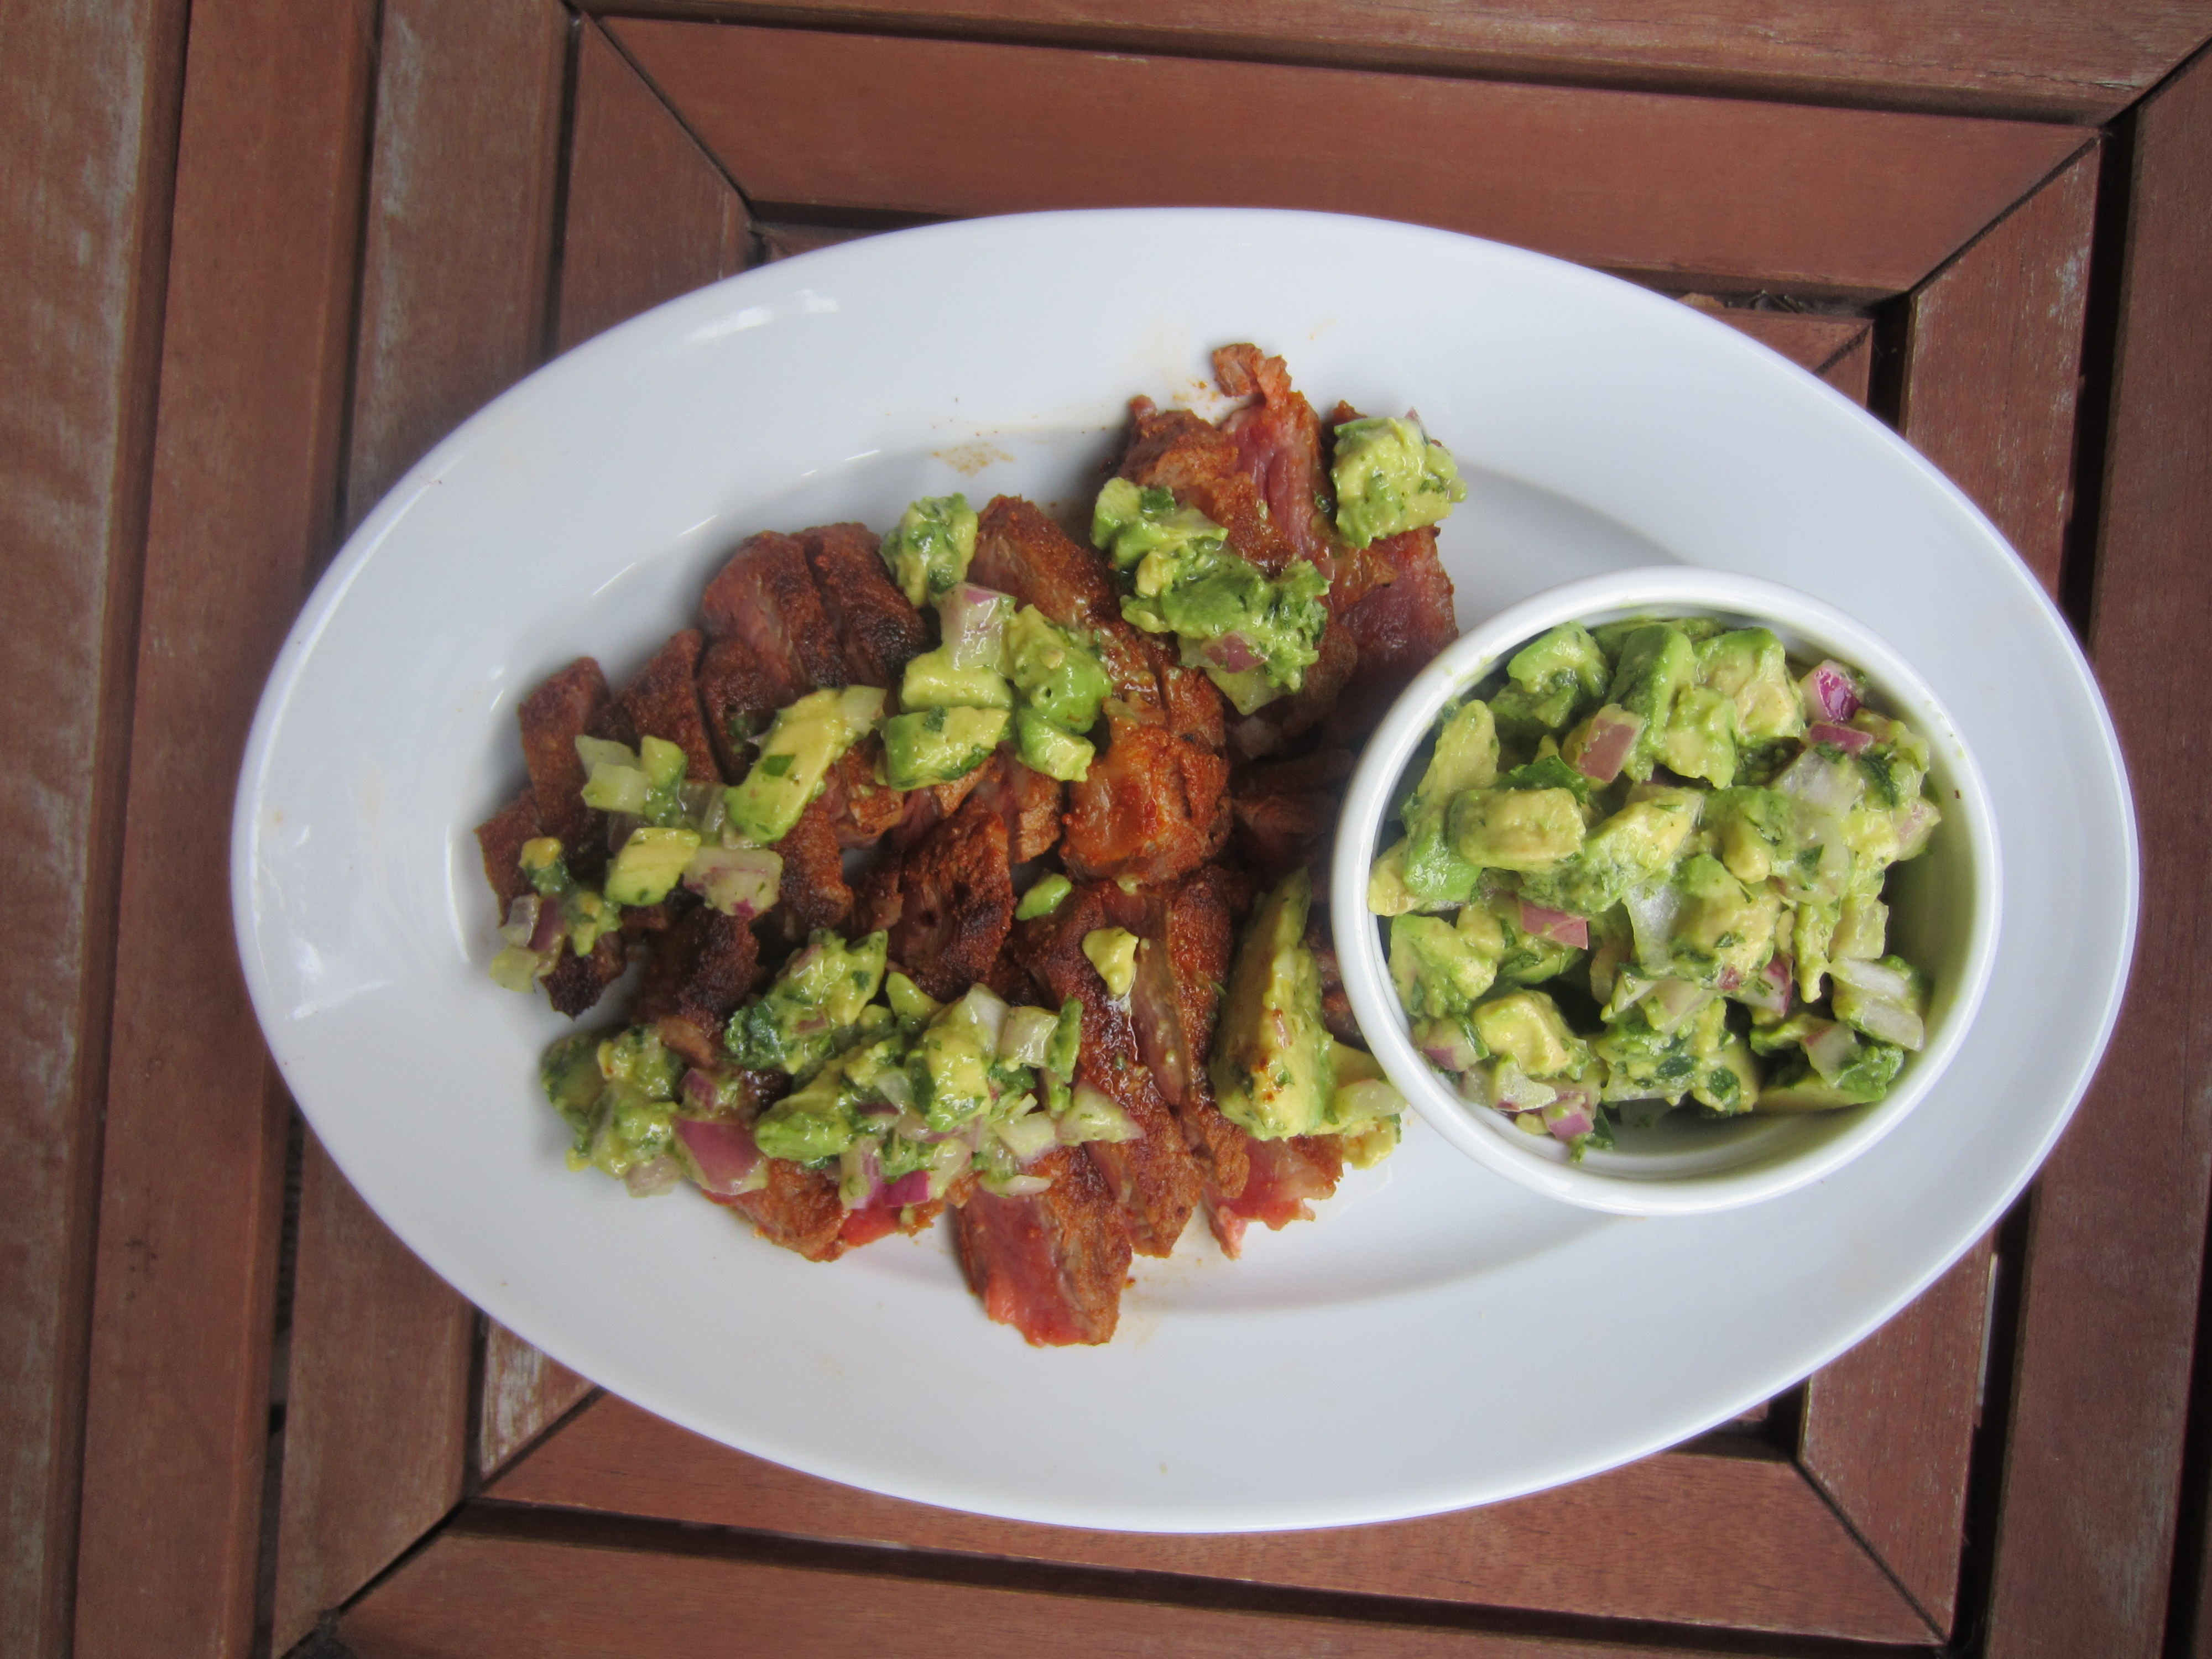 Spice-Rubbed NY Strip Steak with Avocado Lime Salsa